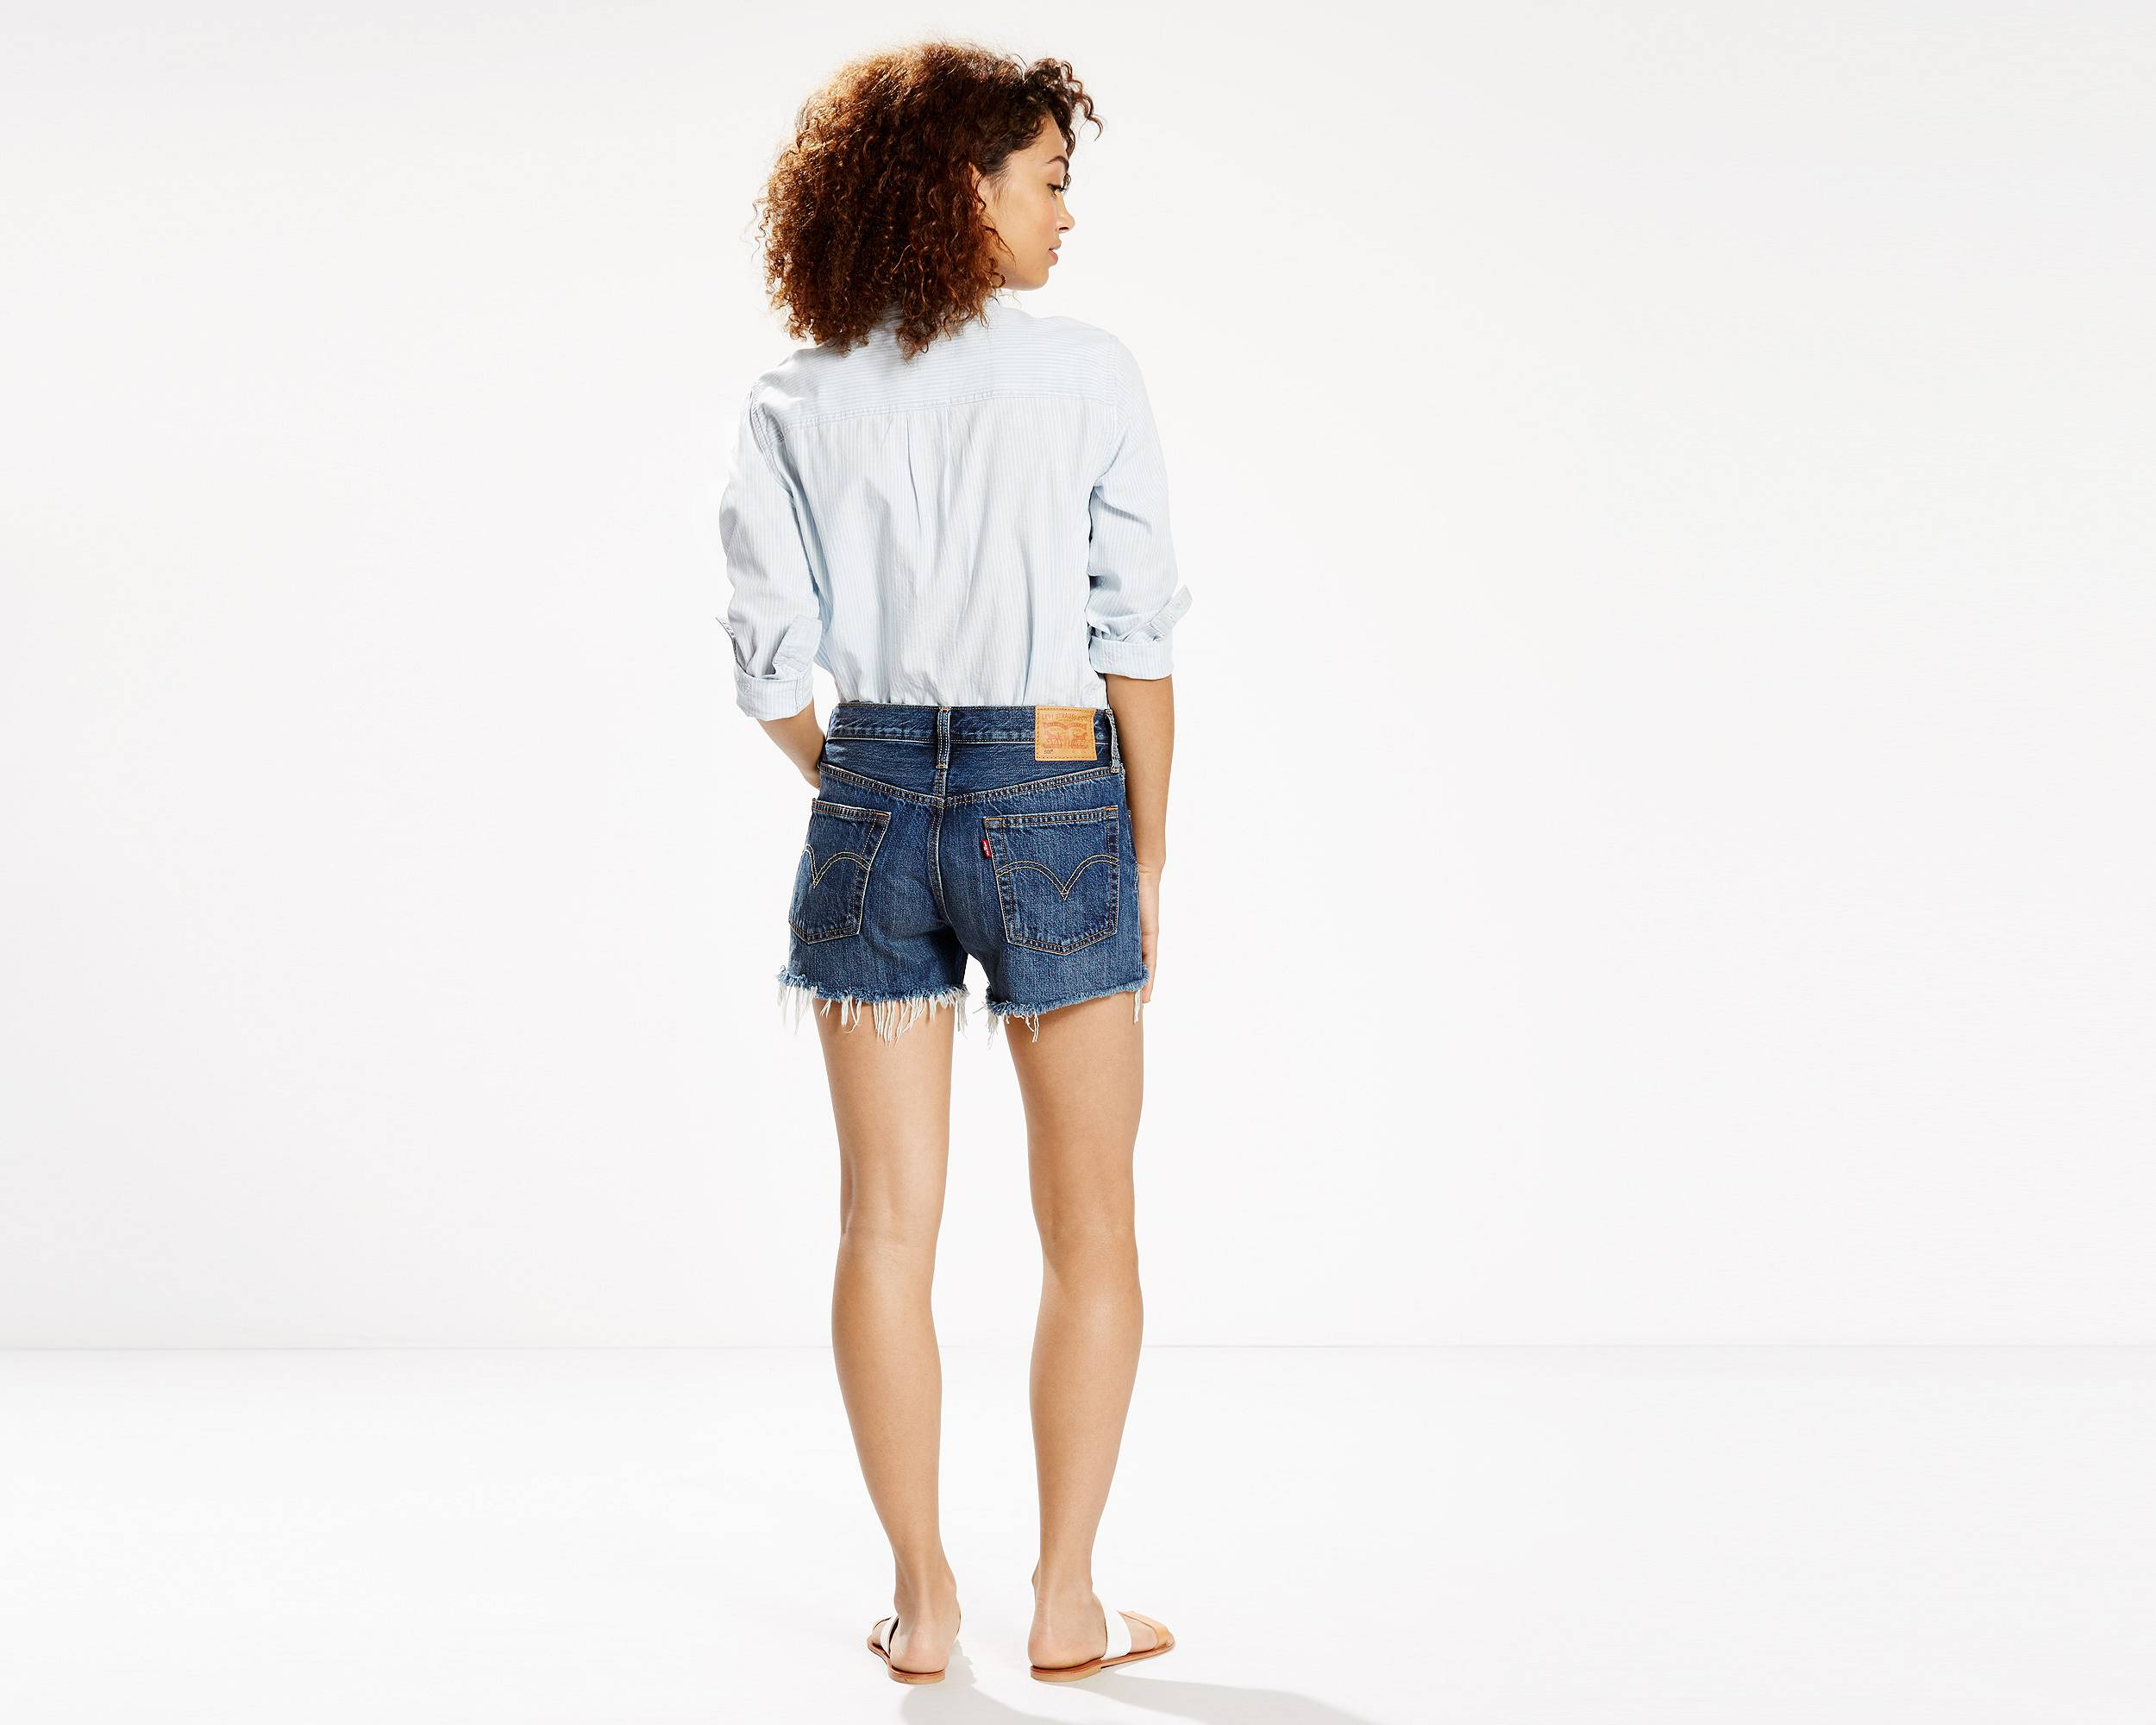 95fa99d715 Flattering Shorts For Your Butt - Shorts Shopping Guide